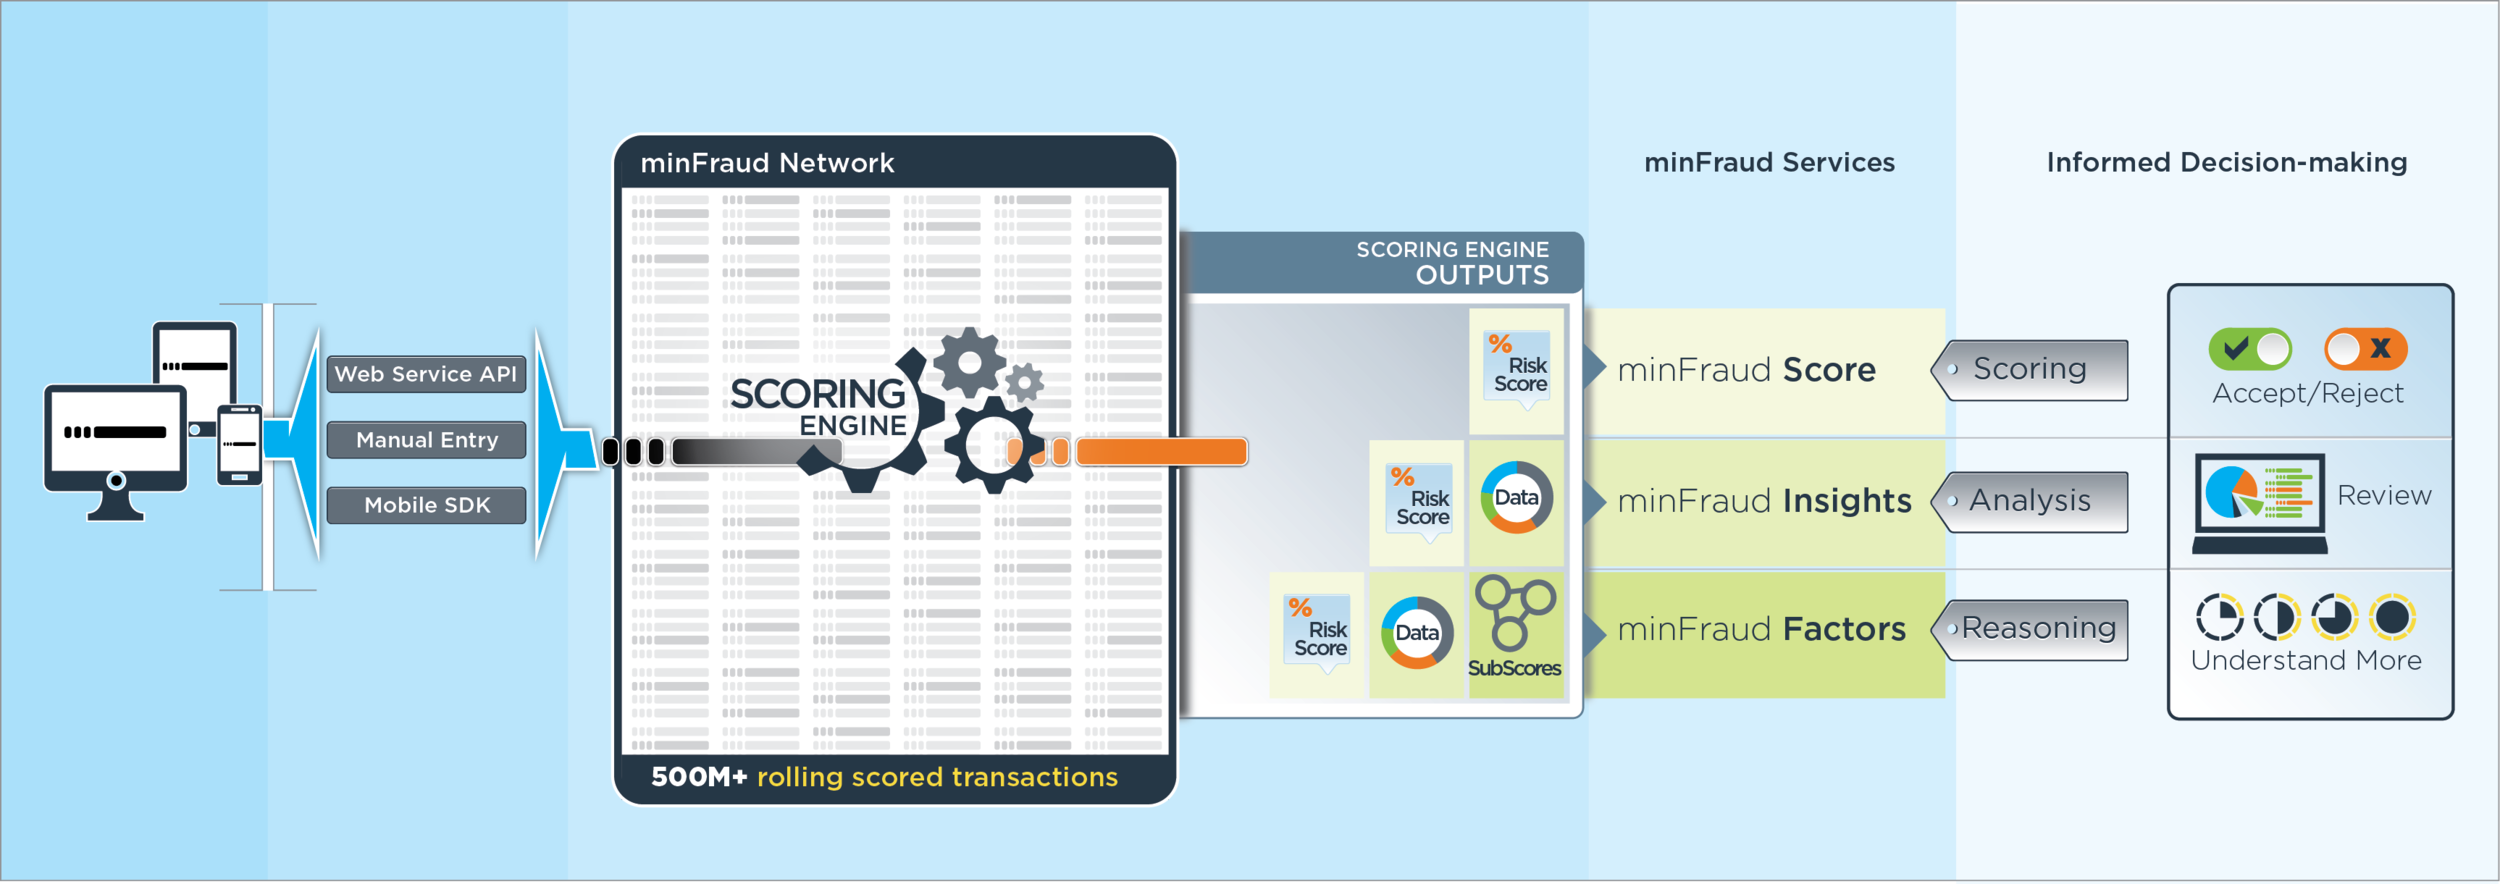 The minFraud Ecosystem.   eCommerce transactions travel through the minFraud network, appropriately scoring each transaction risk and providing customers with appropriate information to make informed decisions that reduce or prevent fraud.  Click image to enlarge.